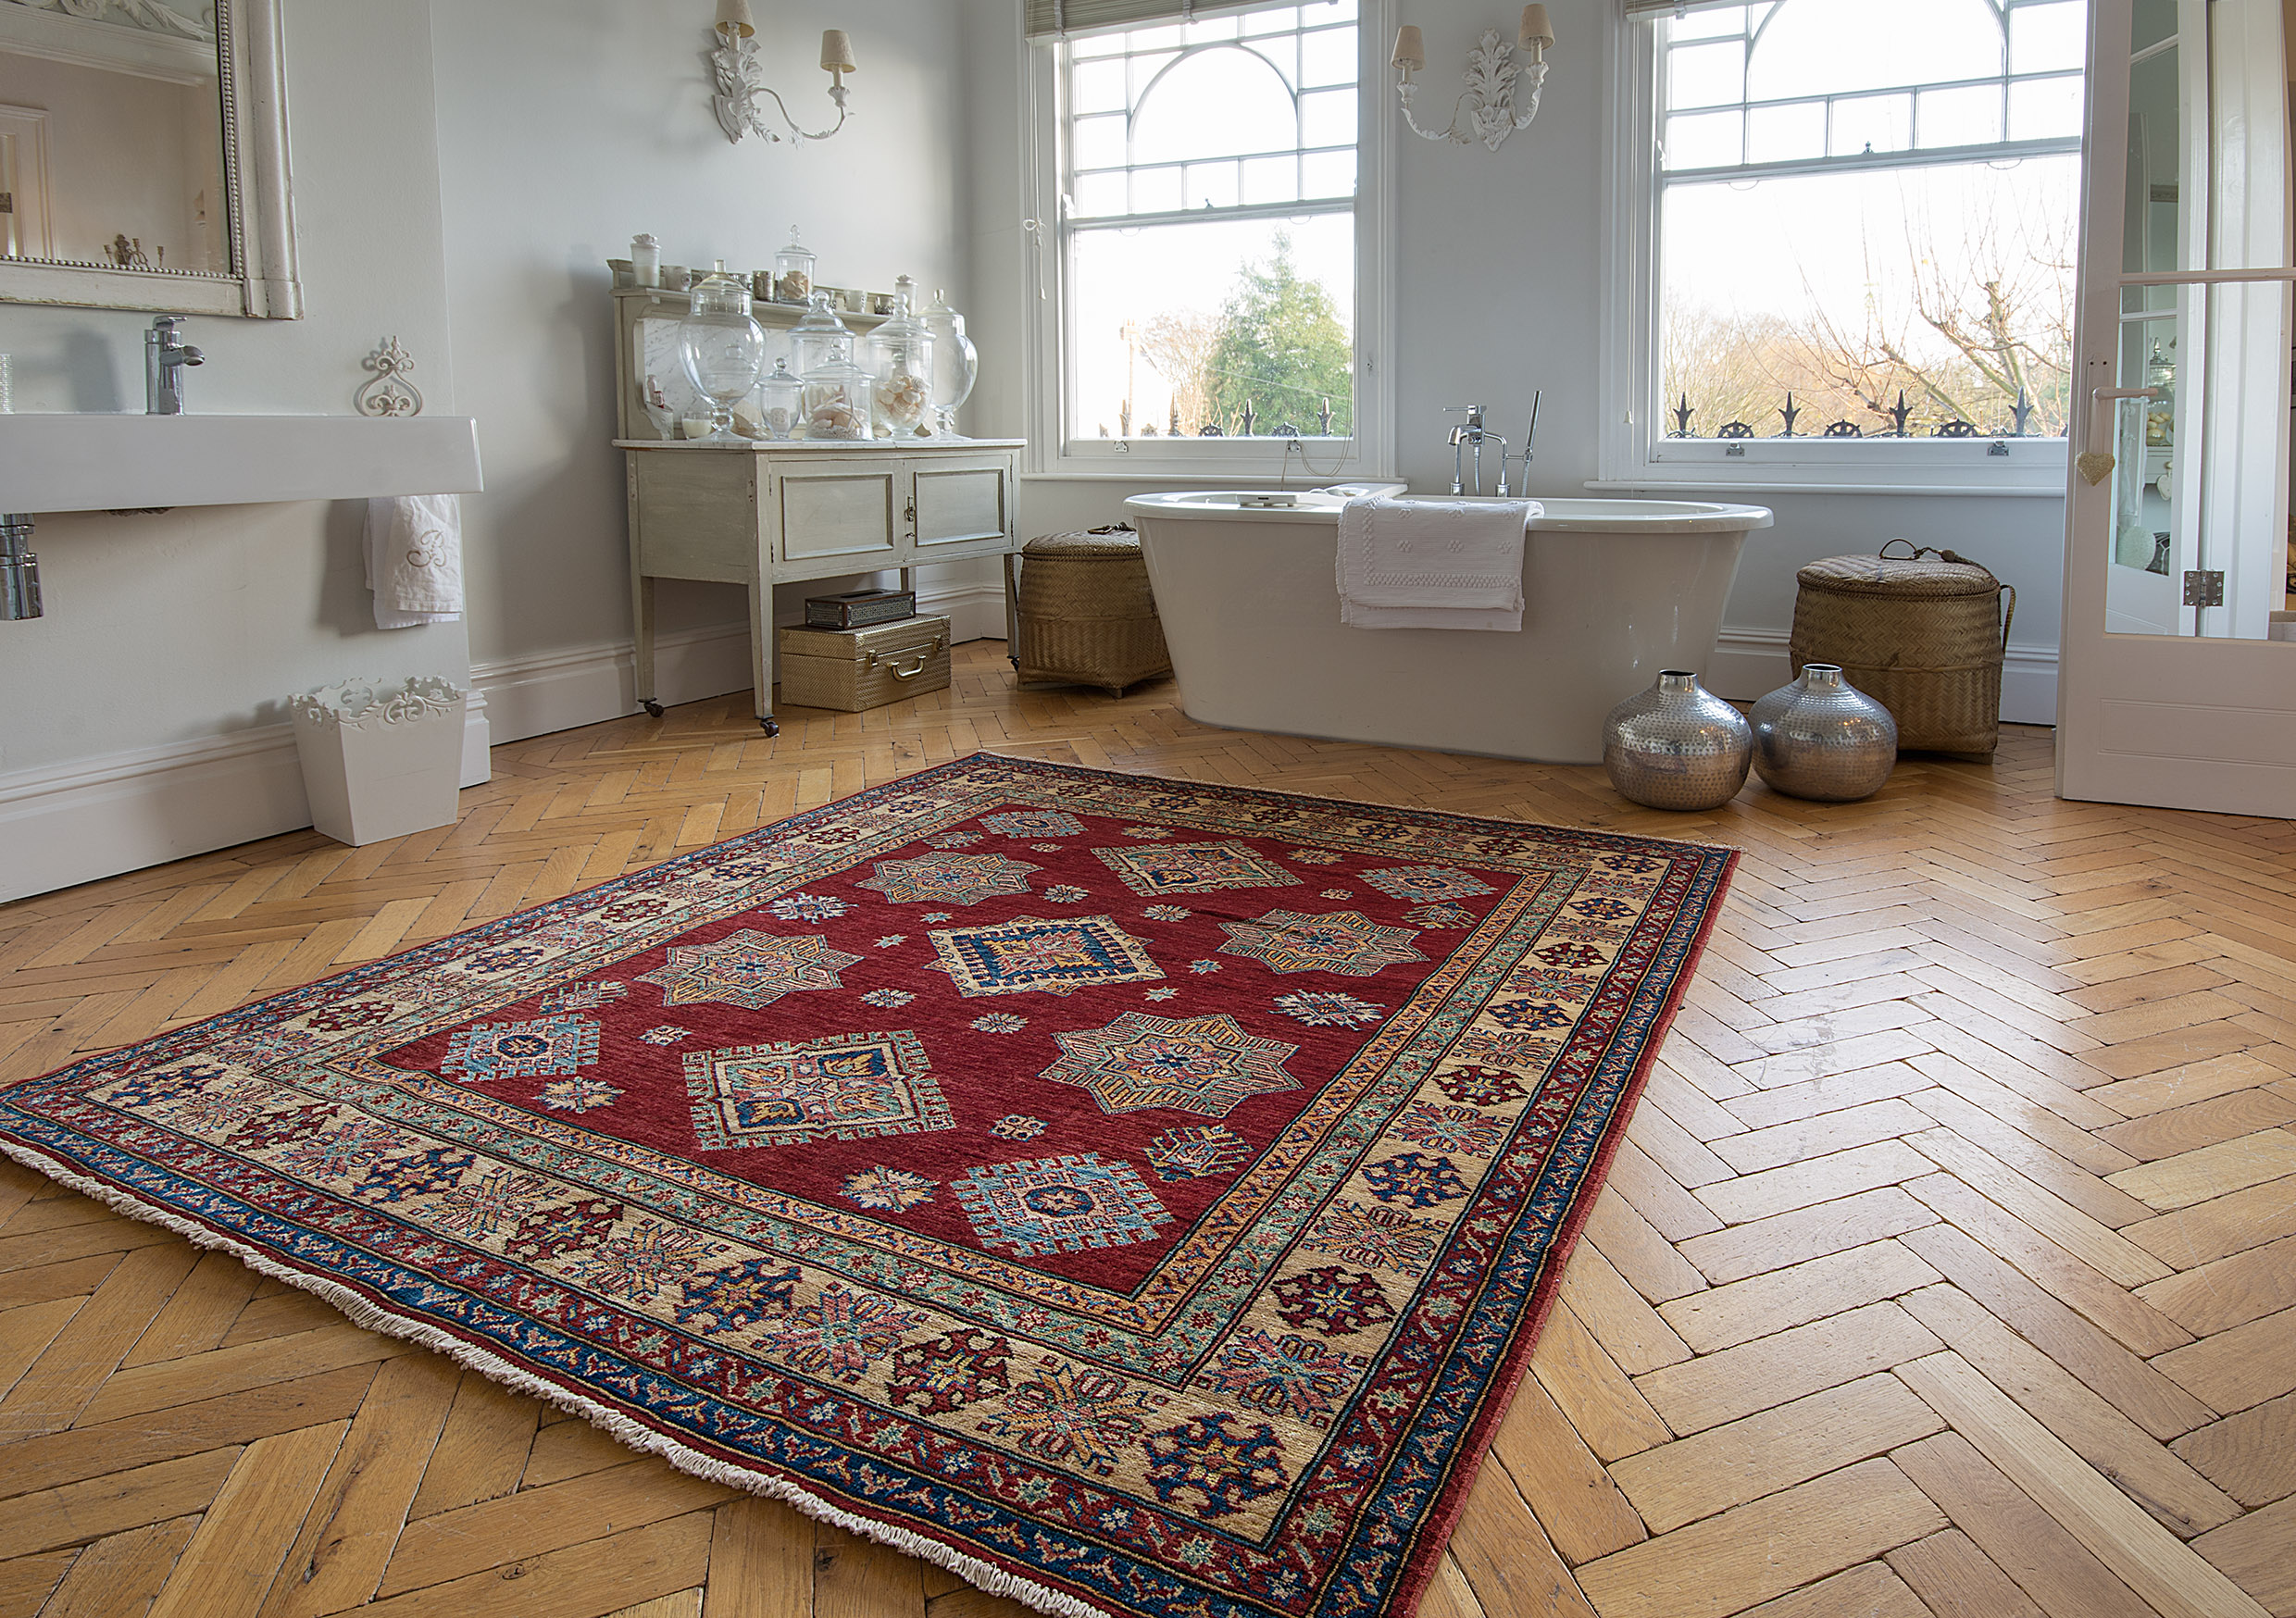 The History of the Afghan Rugs